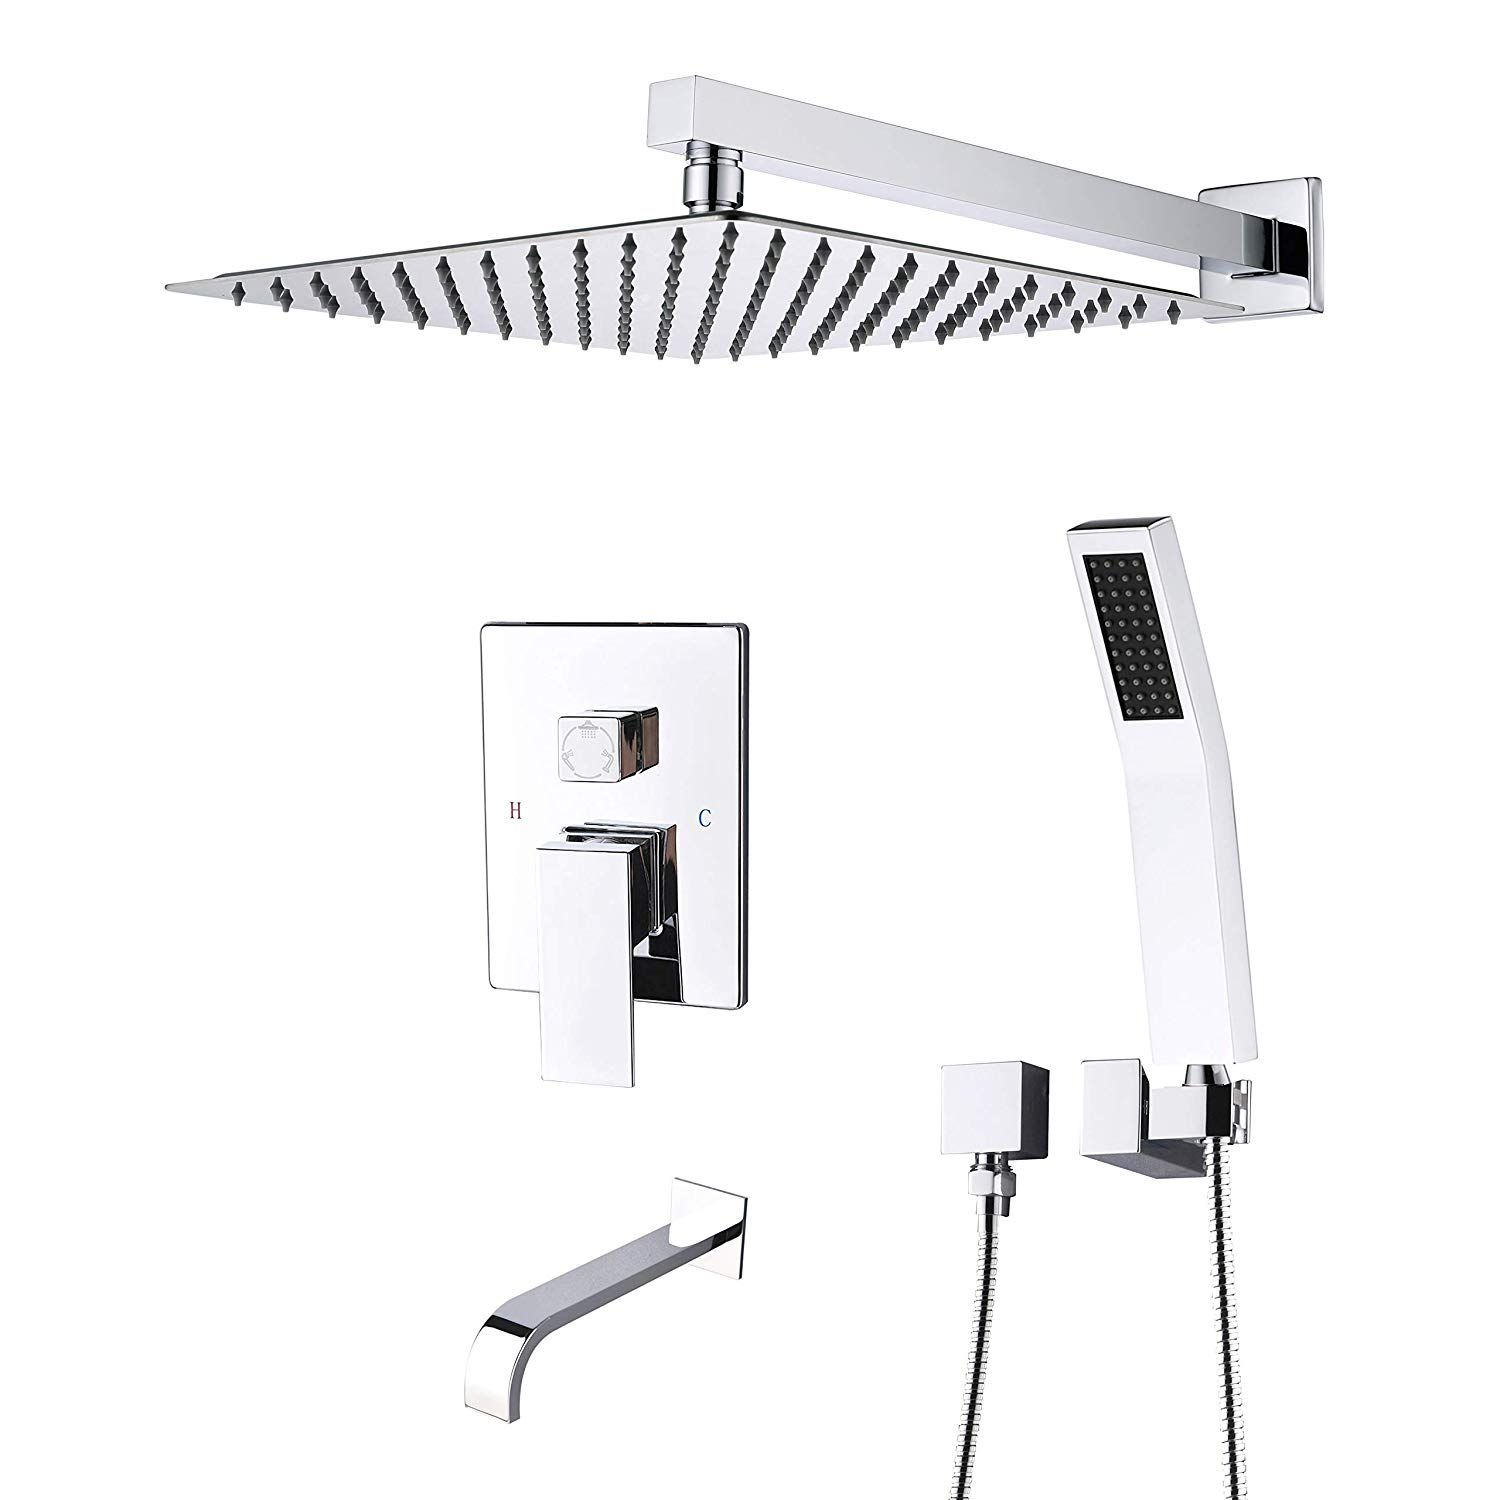 Artbath Shower System Shower Faucet Set With Tub Spout For Bathroom And 10 Inch Square Rain Shower Head Shower Faucet Sets Shower Faucet Tub And Shower Faucets